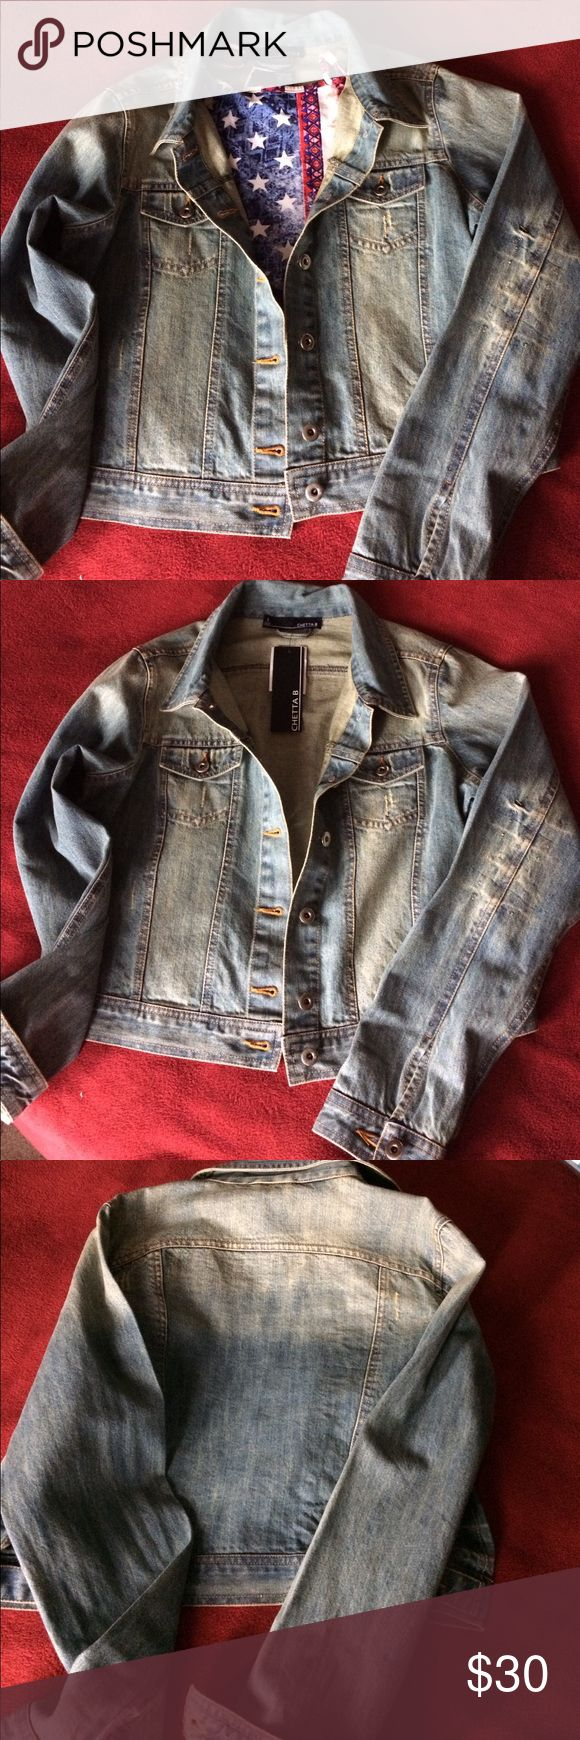 Ombre jean jacket from Chetta B brand new with tag size Small 100% cotton machine was and made in India great outfit for spring and fall season Chetta B Jackets & Coats Jean Jackets